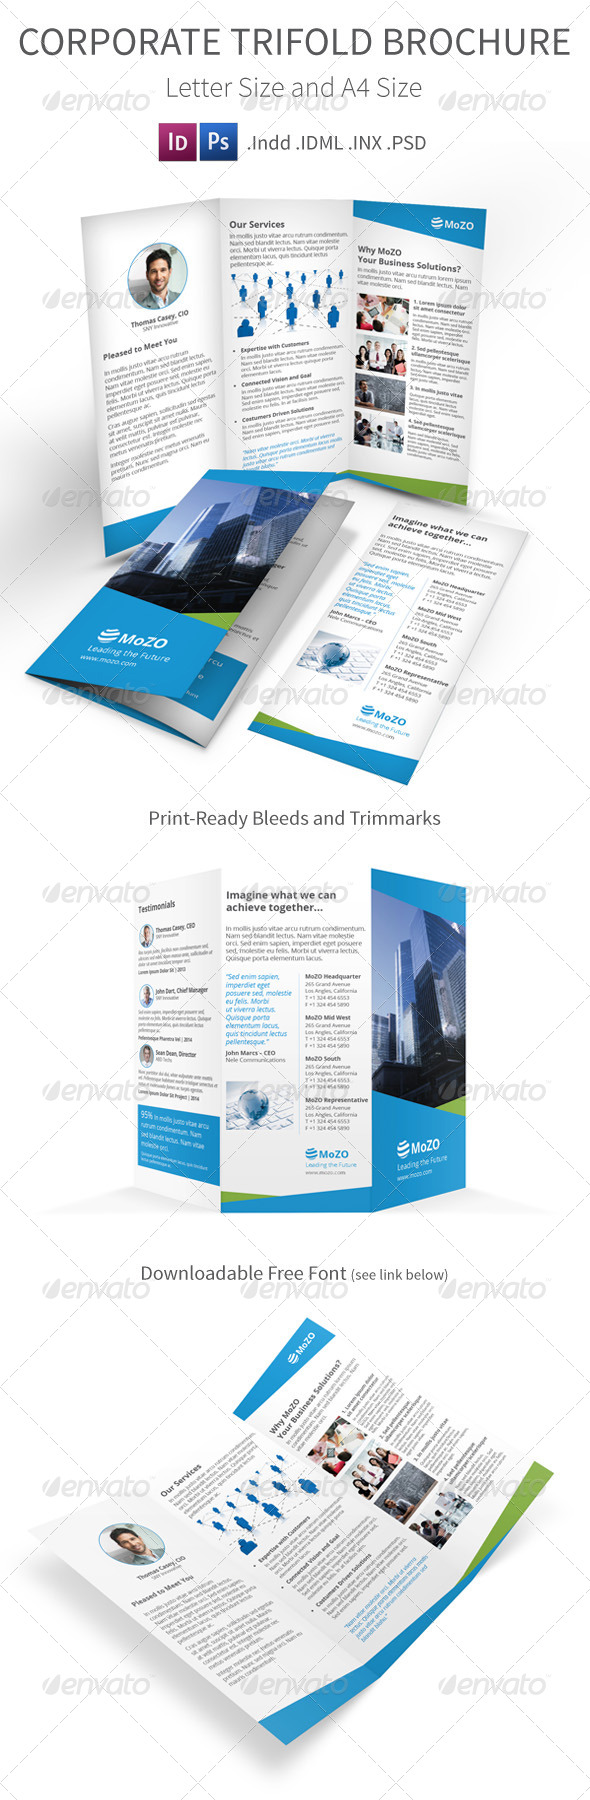 Corporate Trifold Brochure A4 and Letter Size